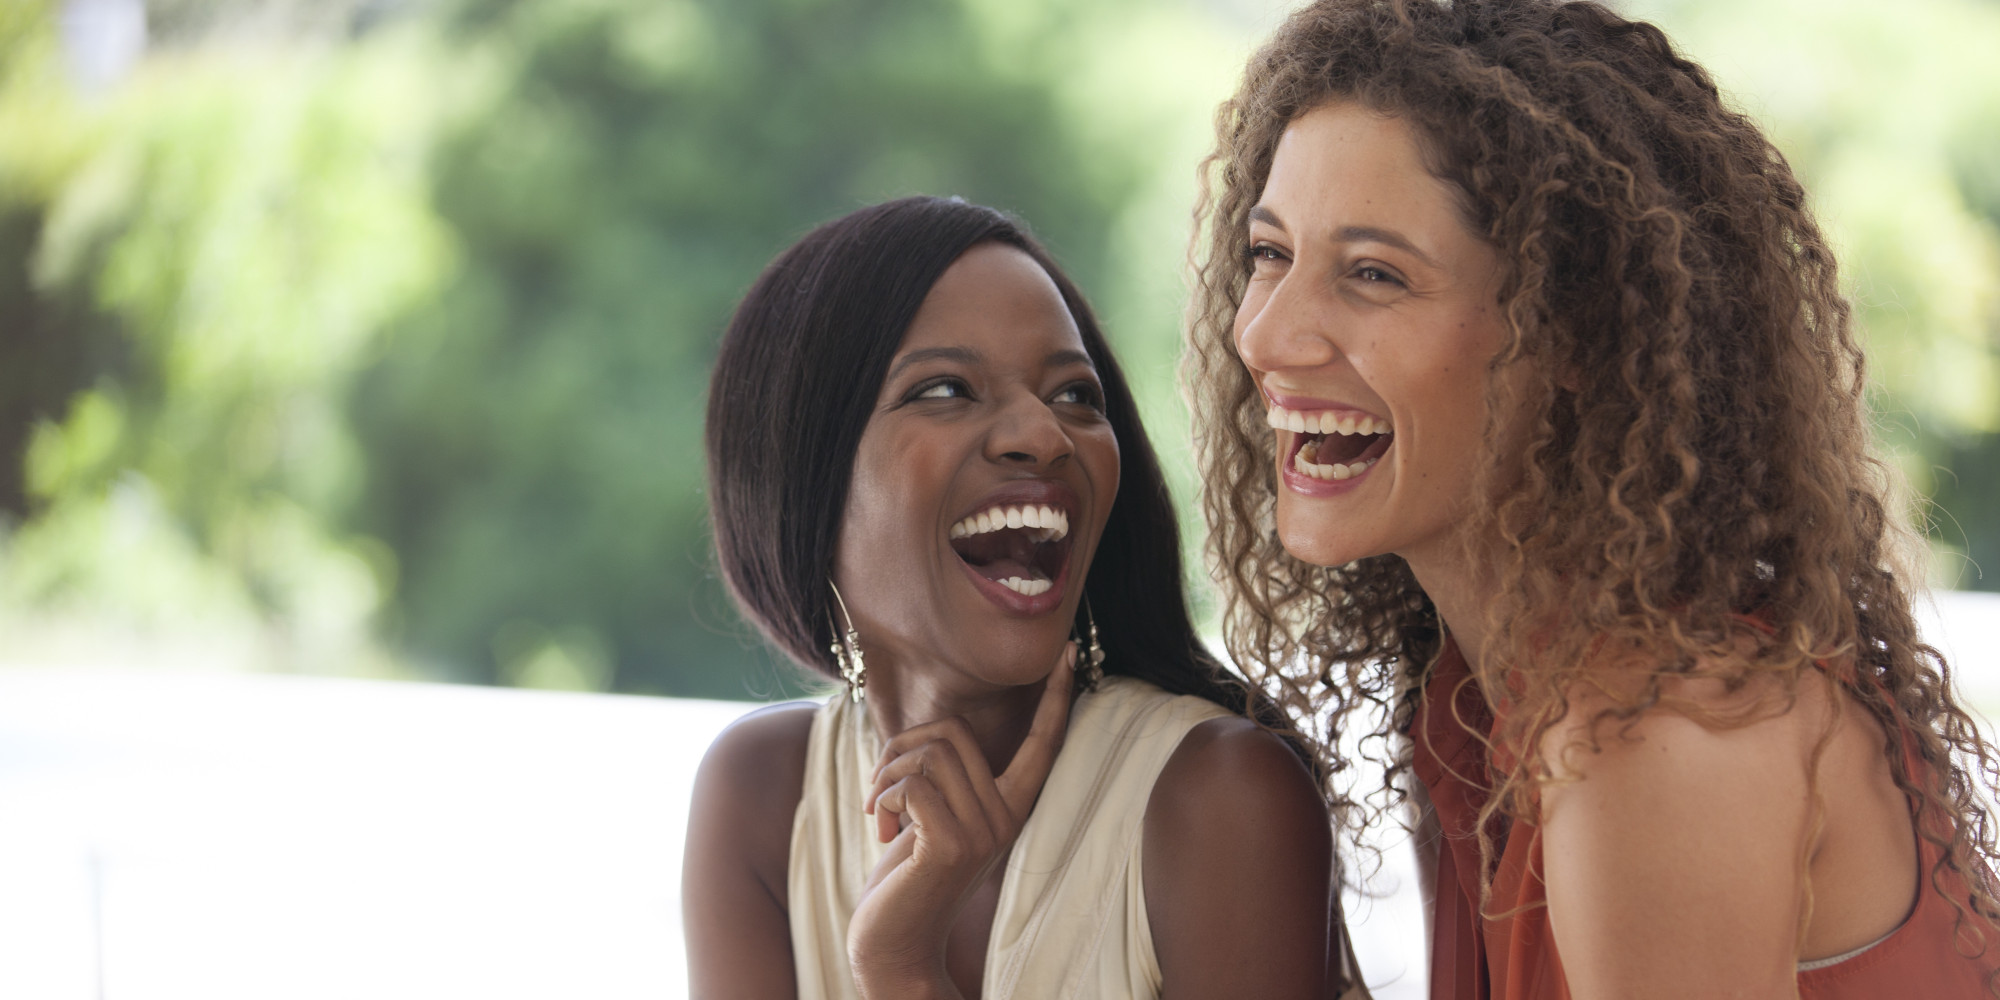 Laughter: 5 Ways Laughing Can Improve Your Health